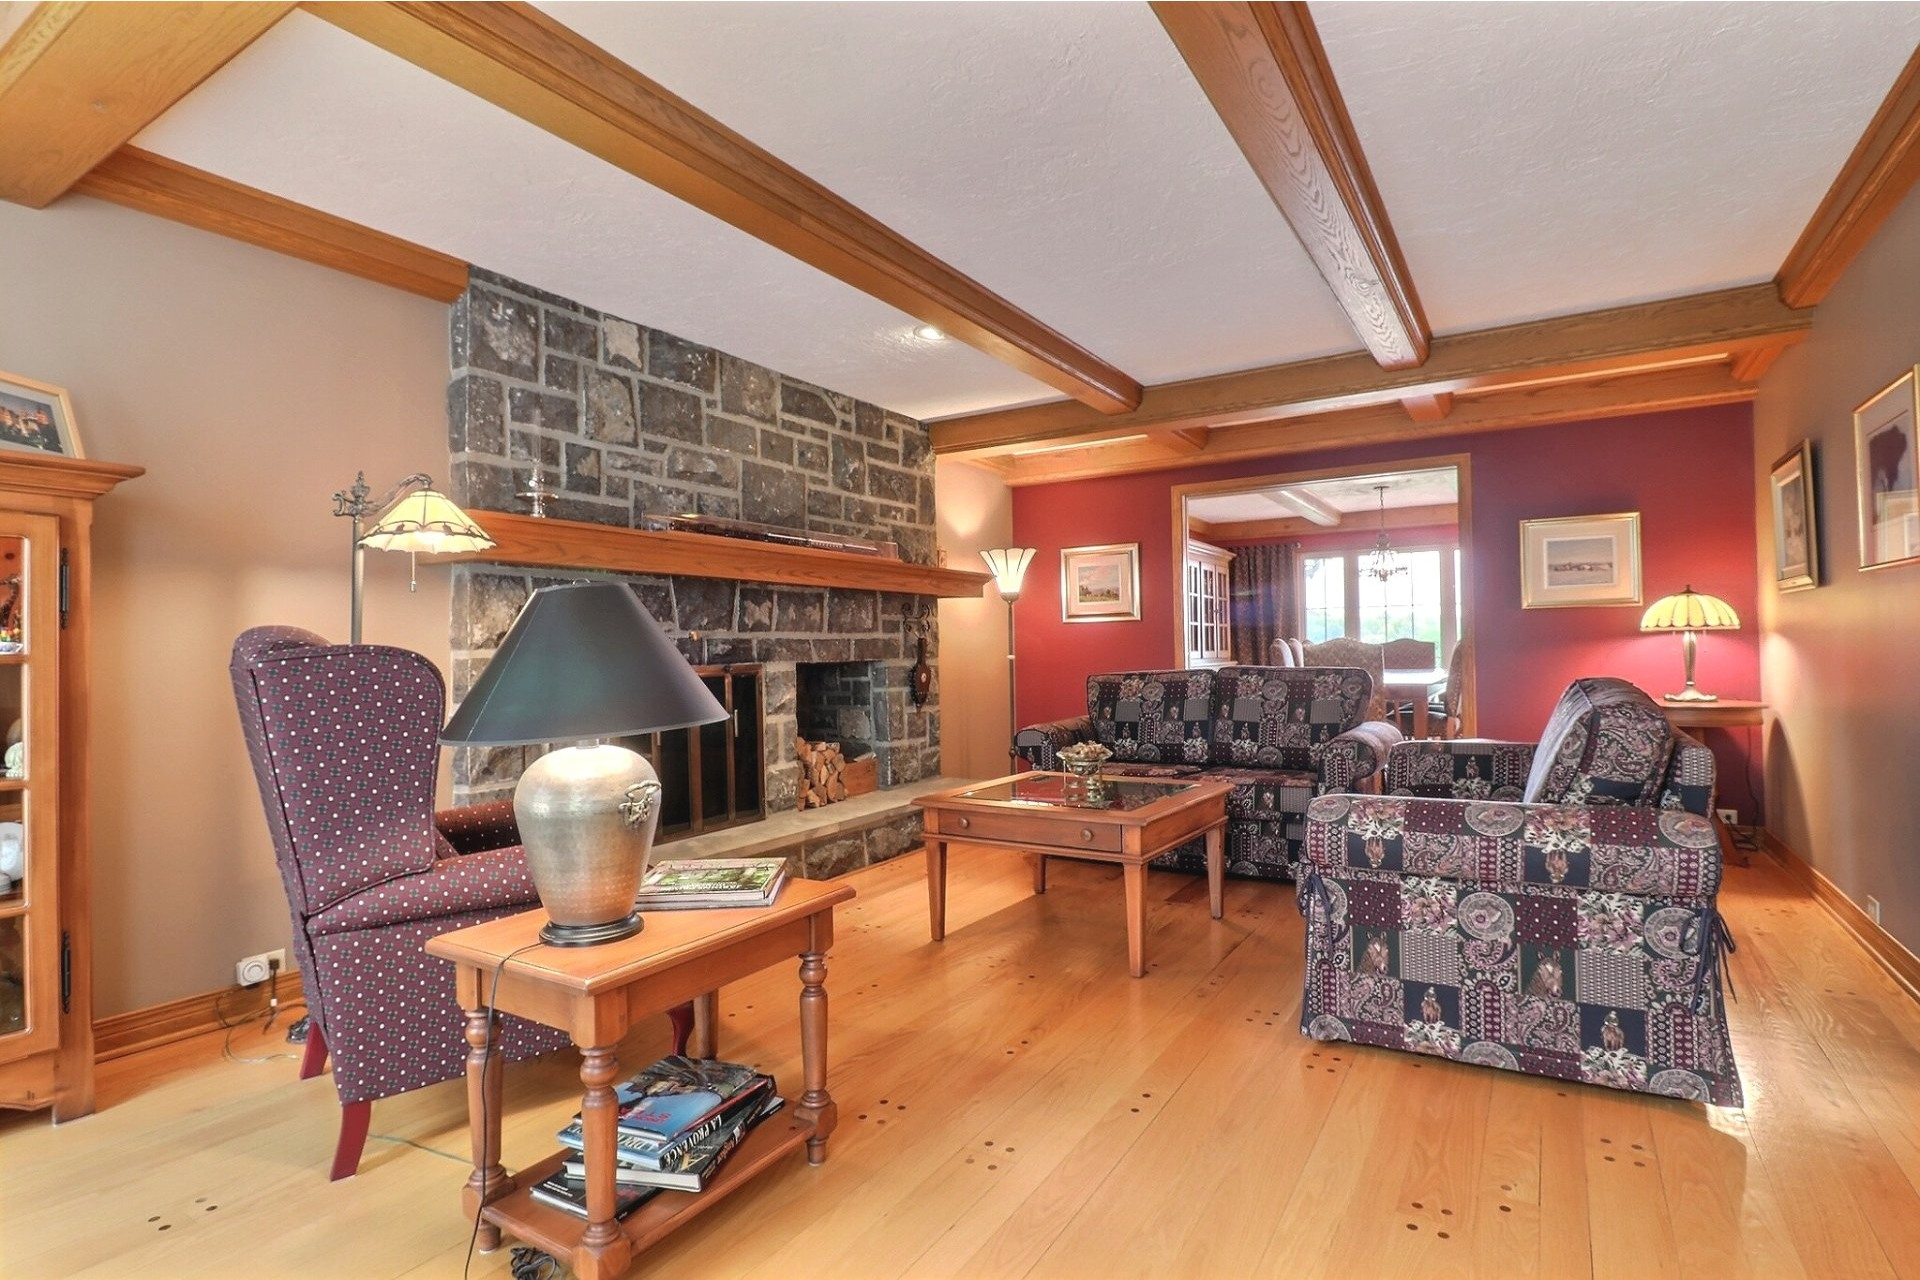 image 11 - House For sale Duvernay Laval